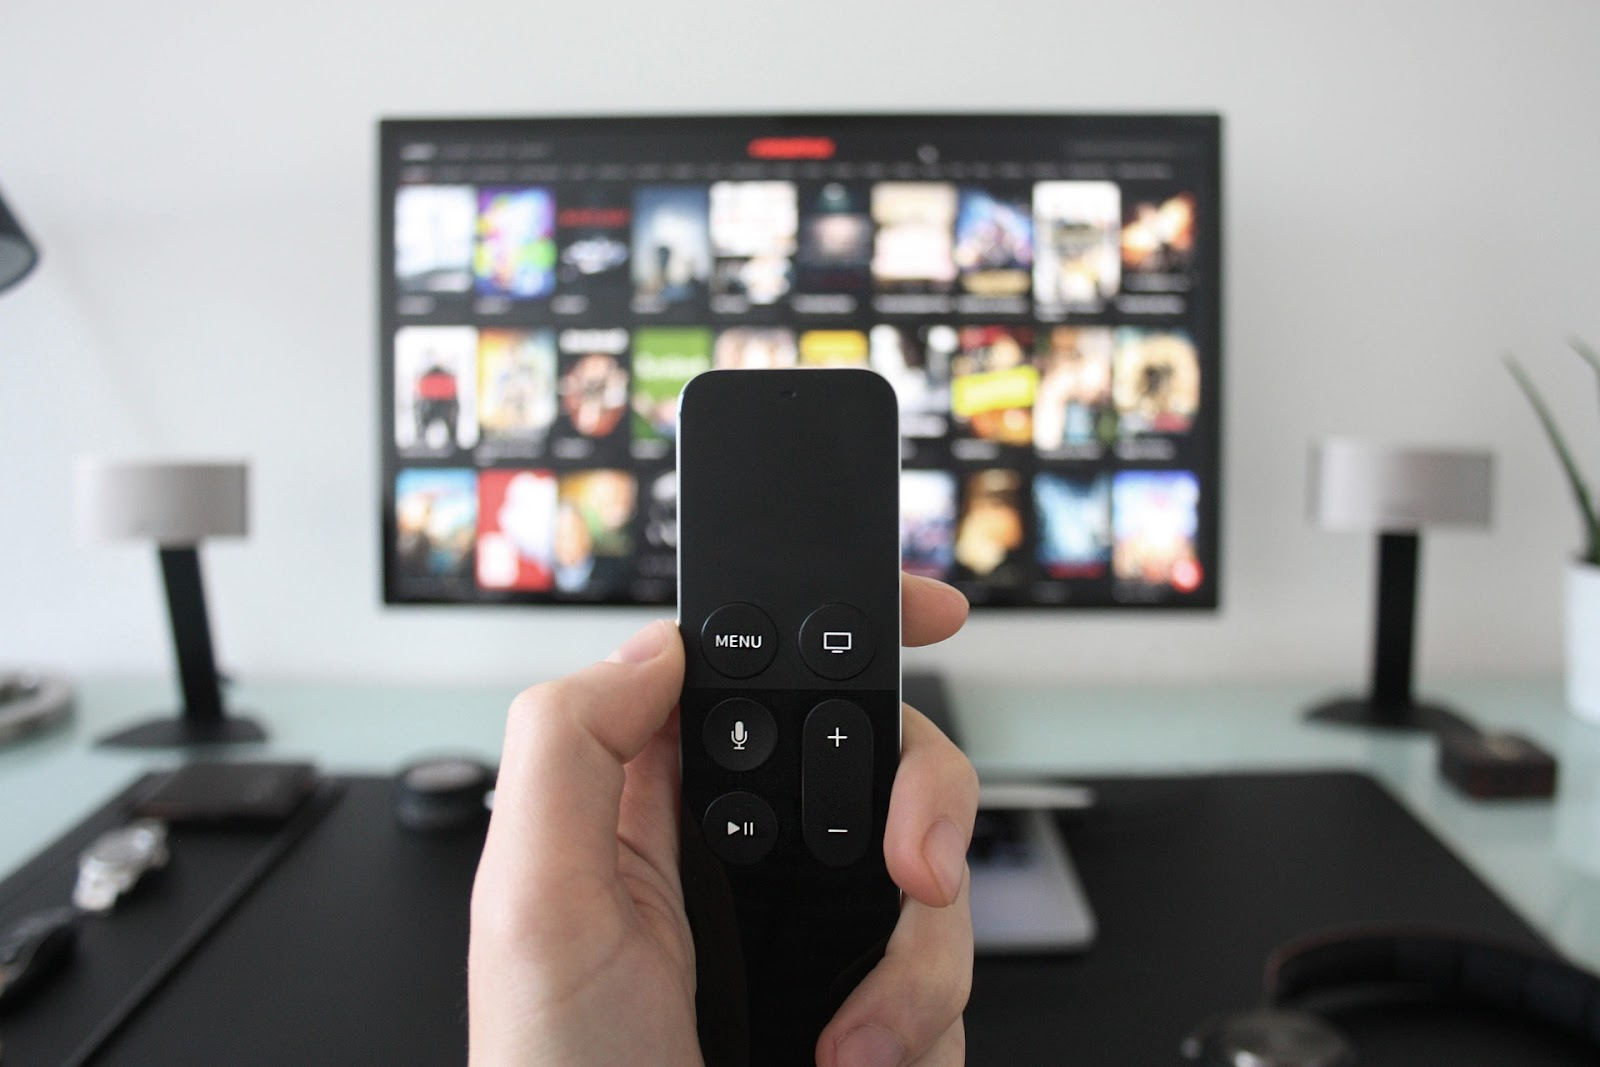 Remote control and netflix on a TV